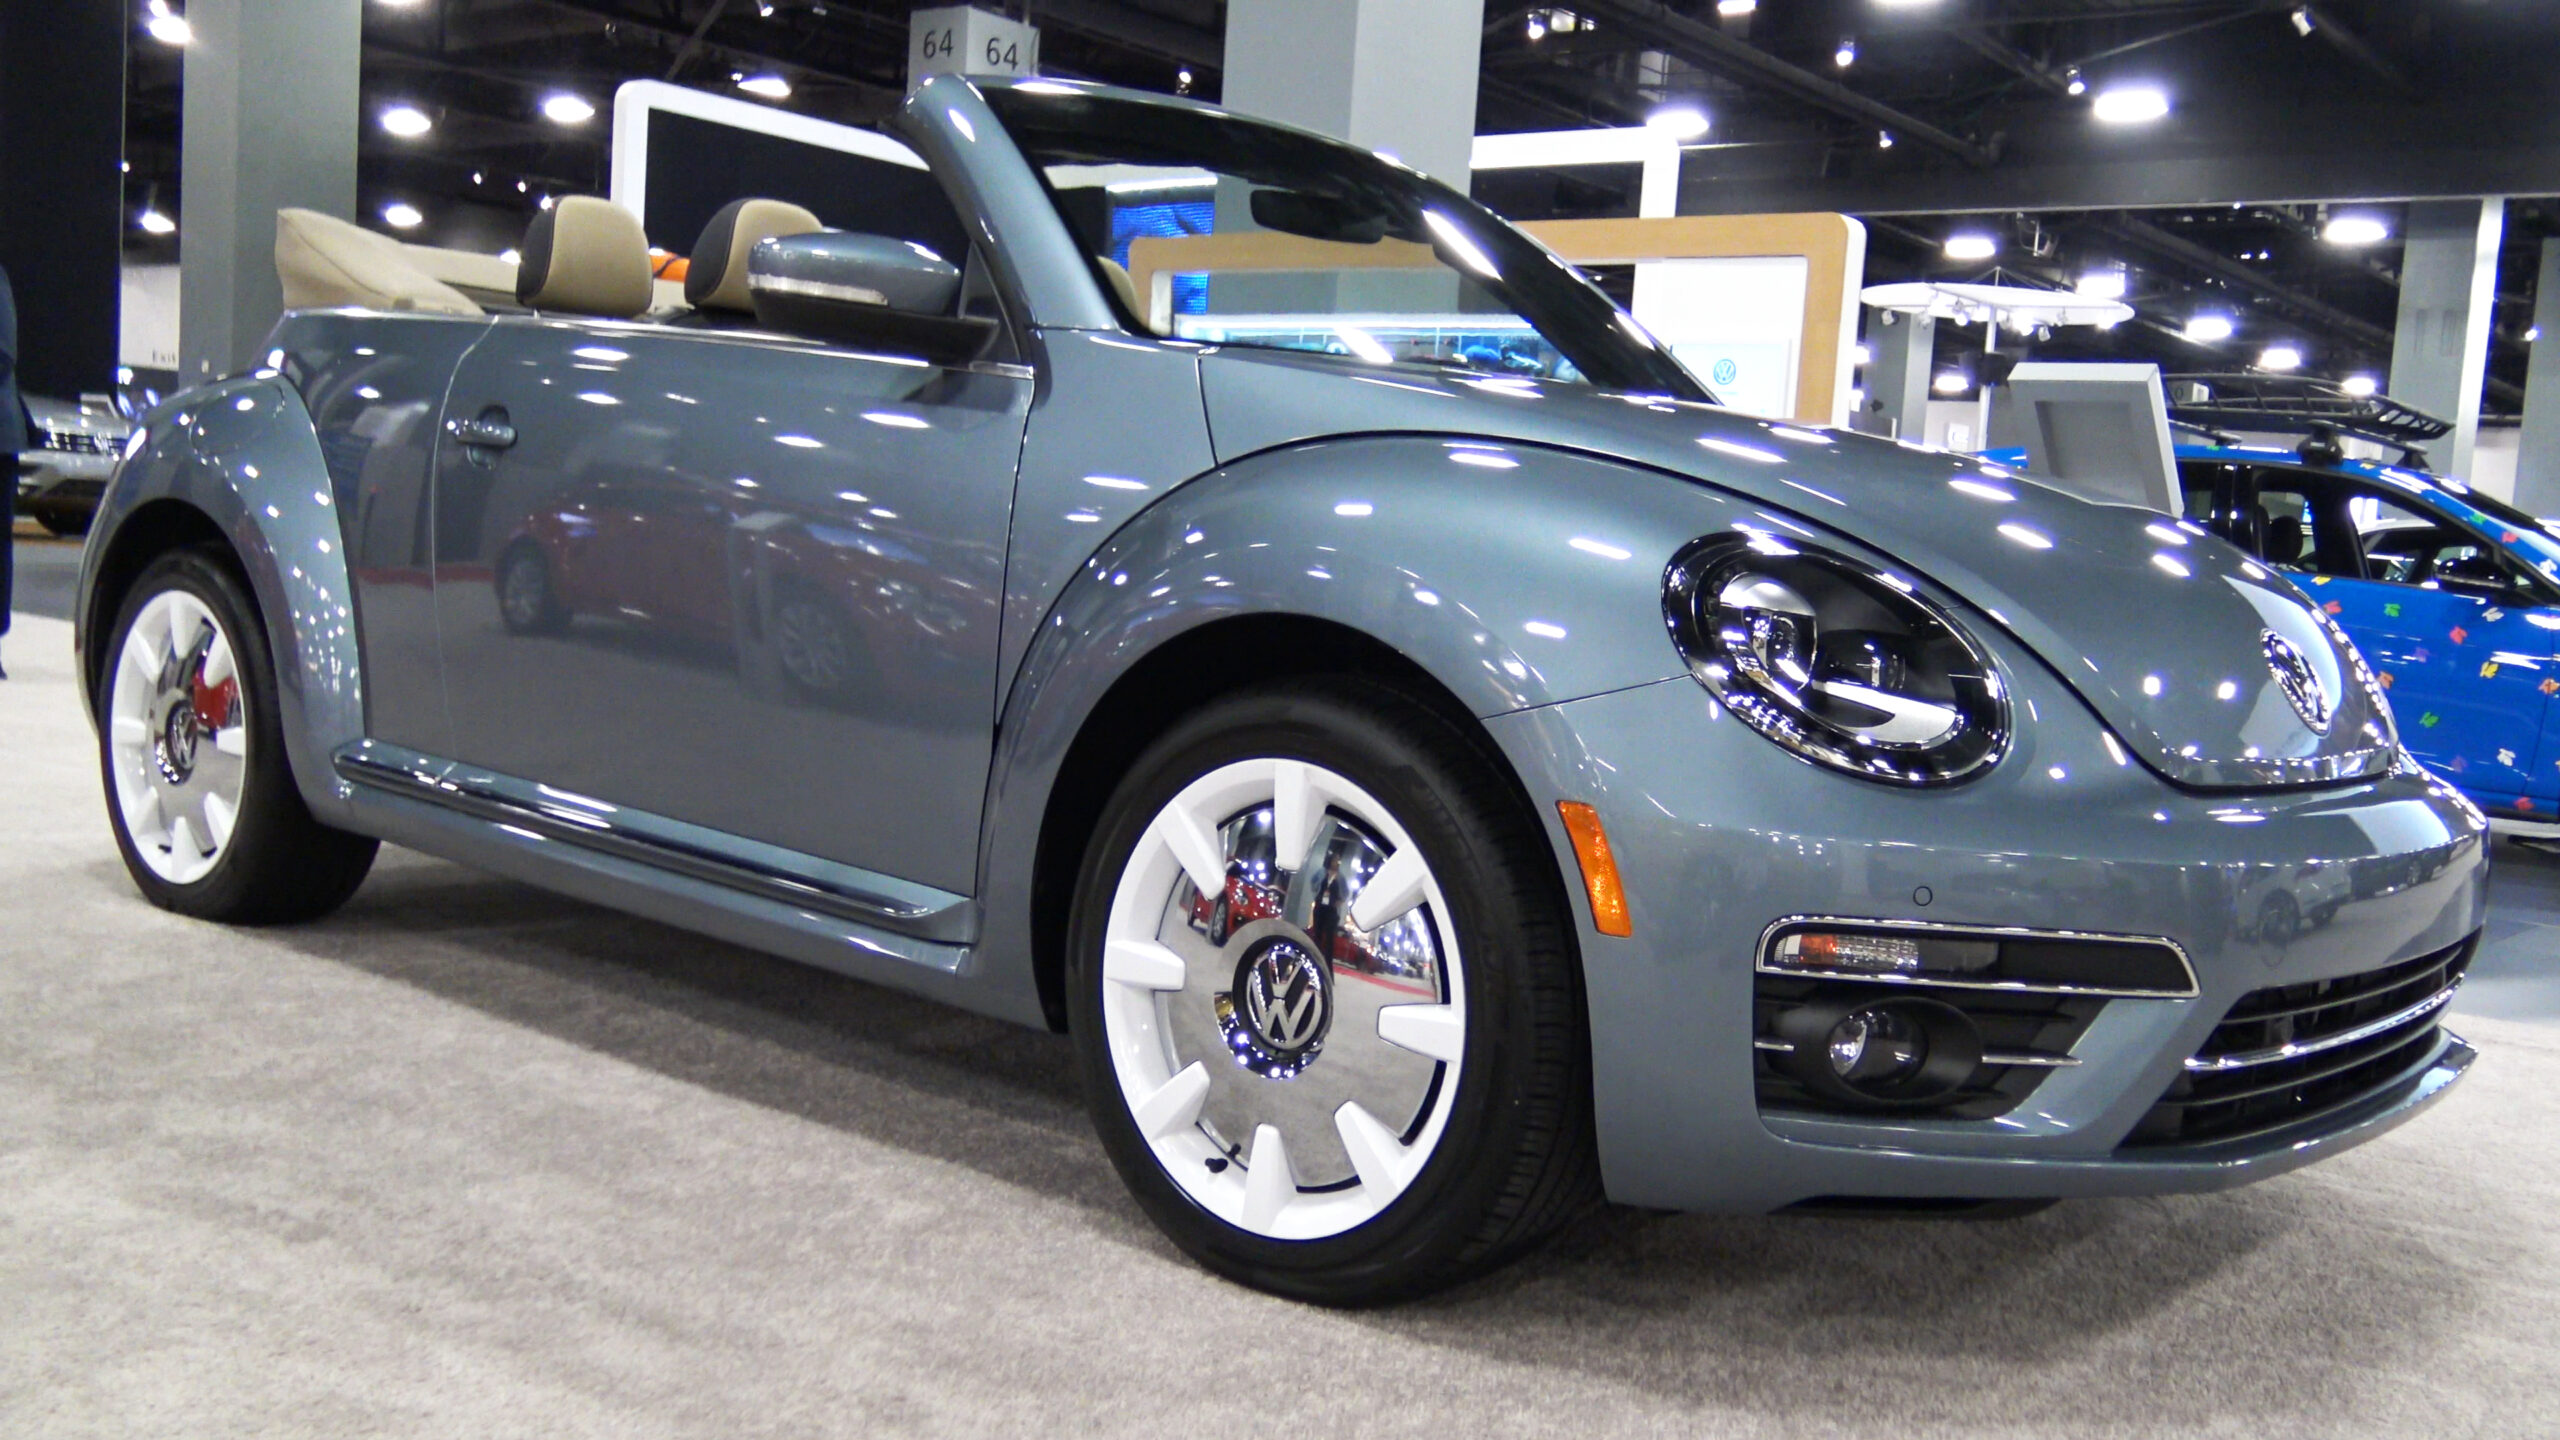 2019 Volkswagen Beetle Convertible Final Edition in Blue